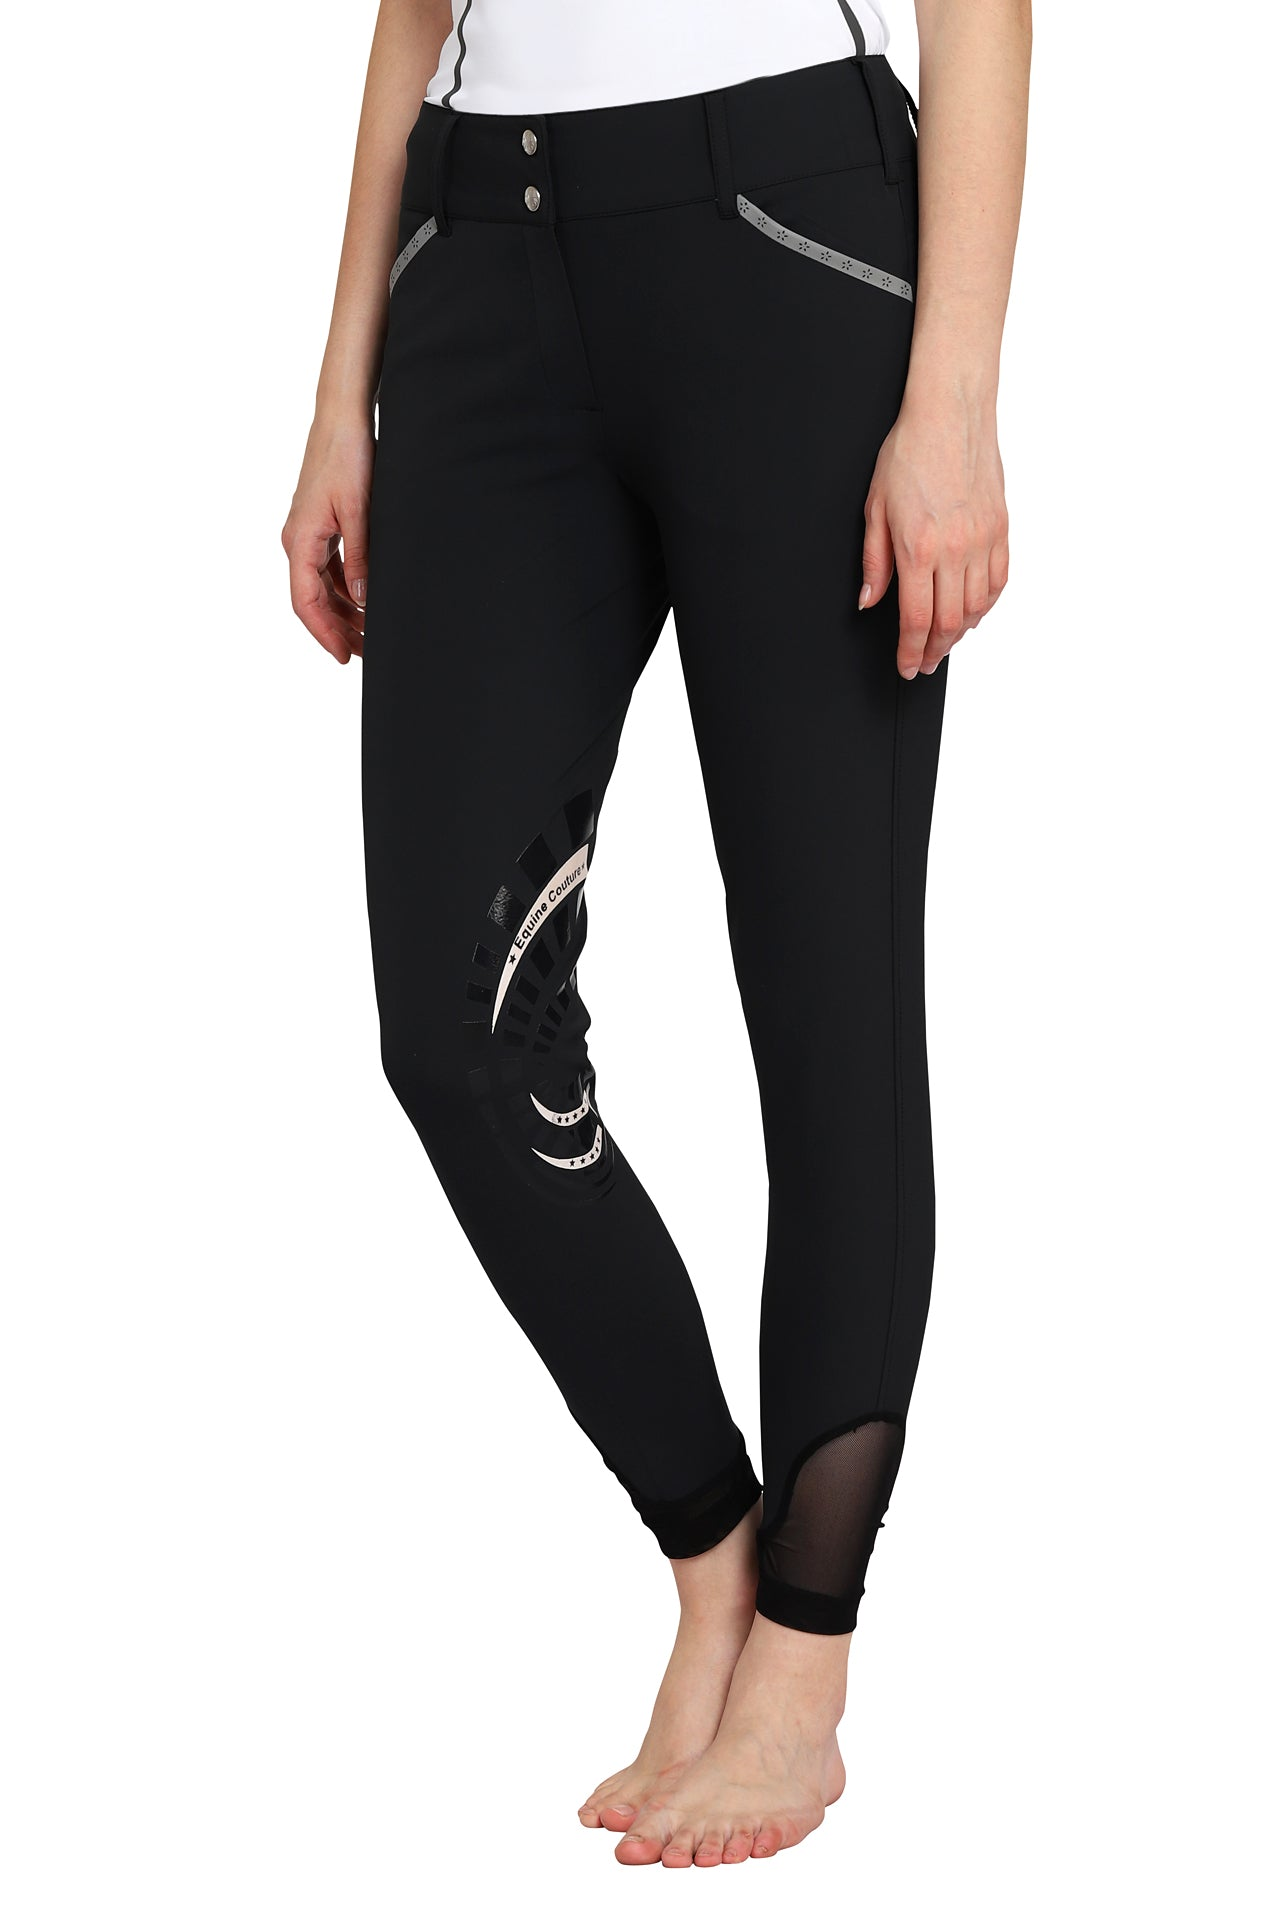 EQUINE COUTURE LADIES MALTA KNEE PATCH BREECHES - Breeches.com